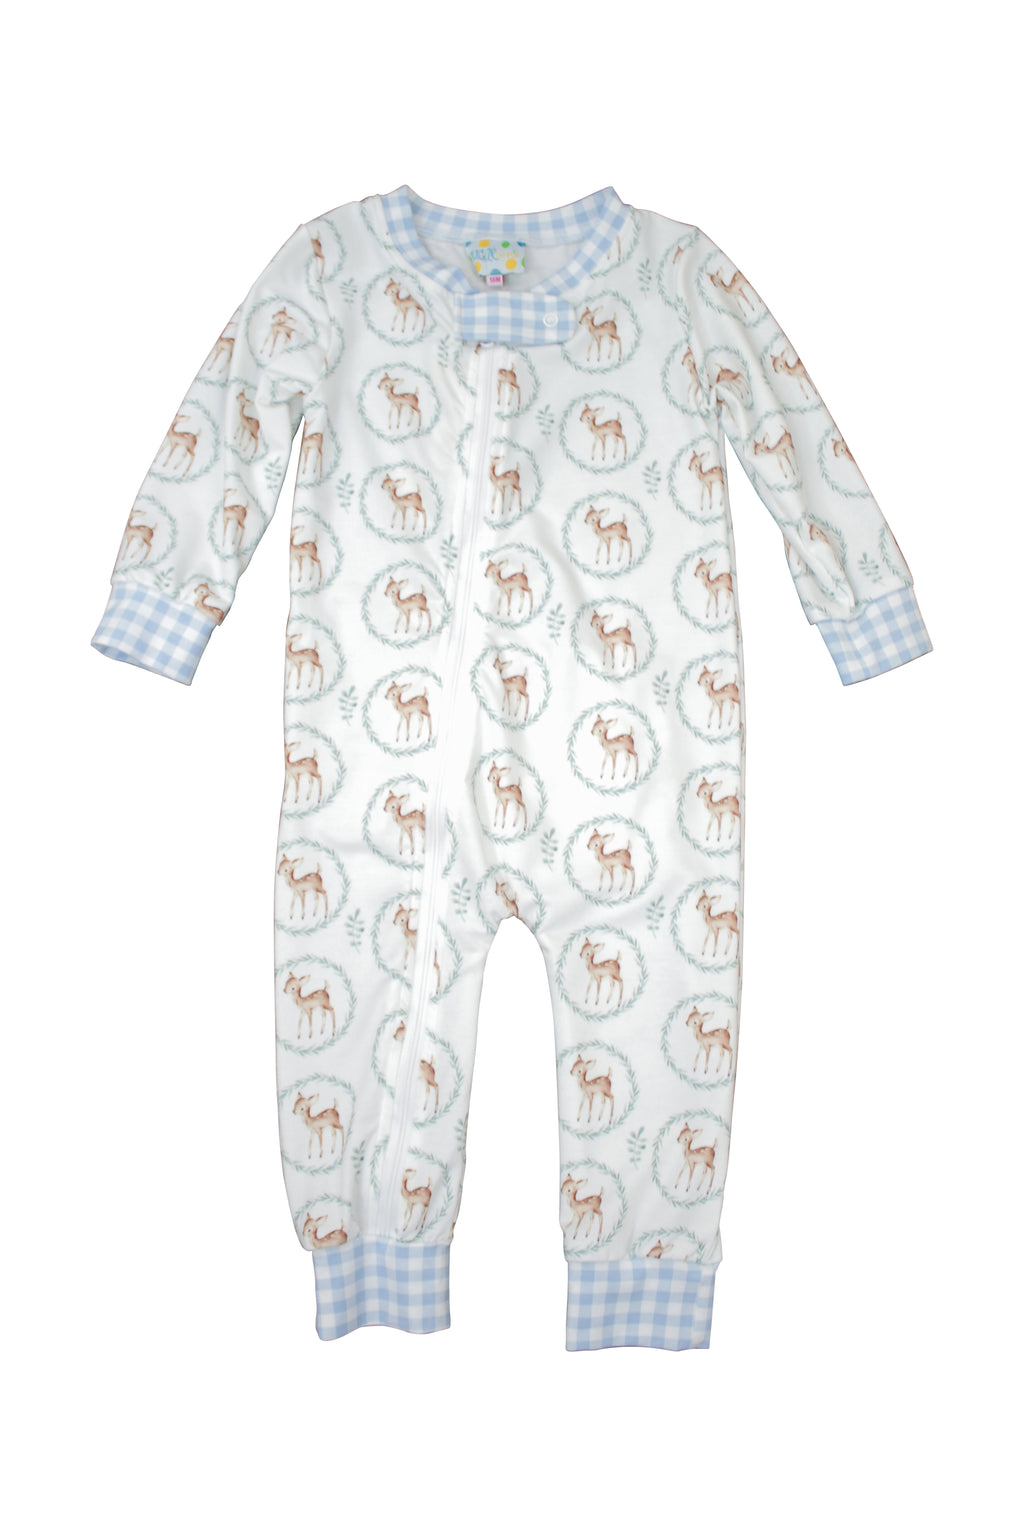 Deer Wreath Flap PJs